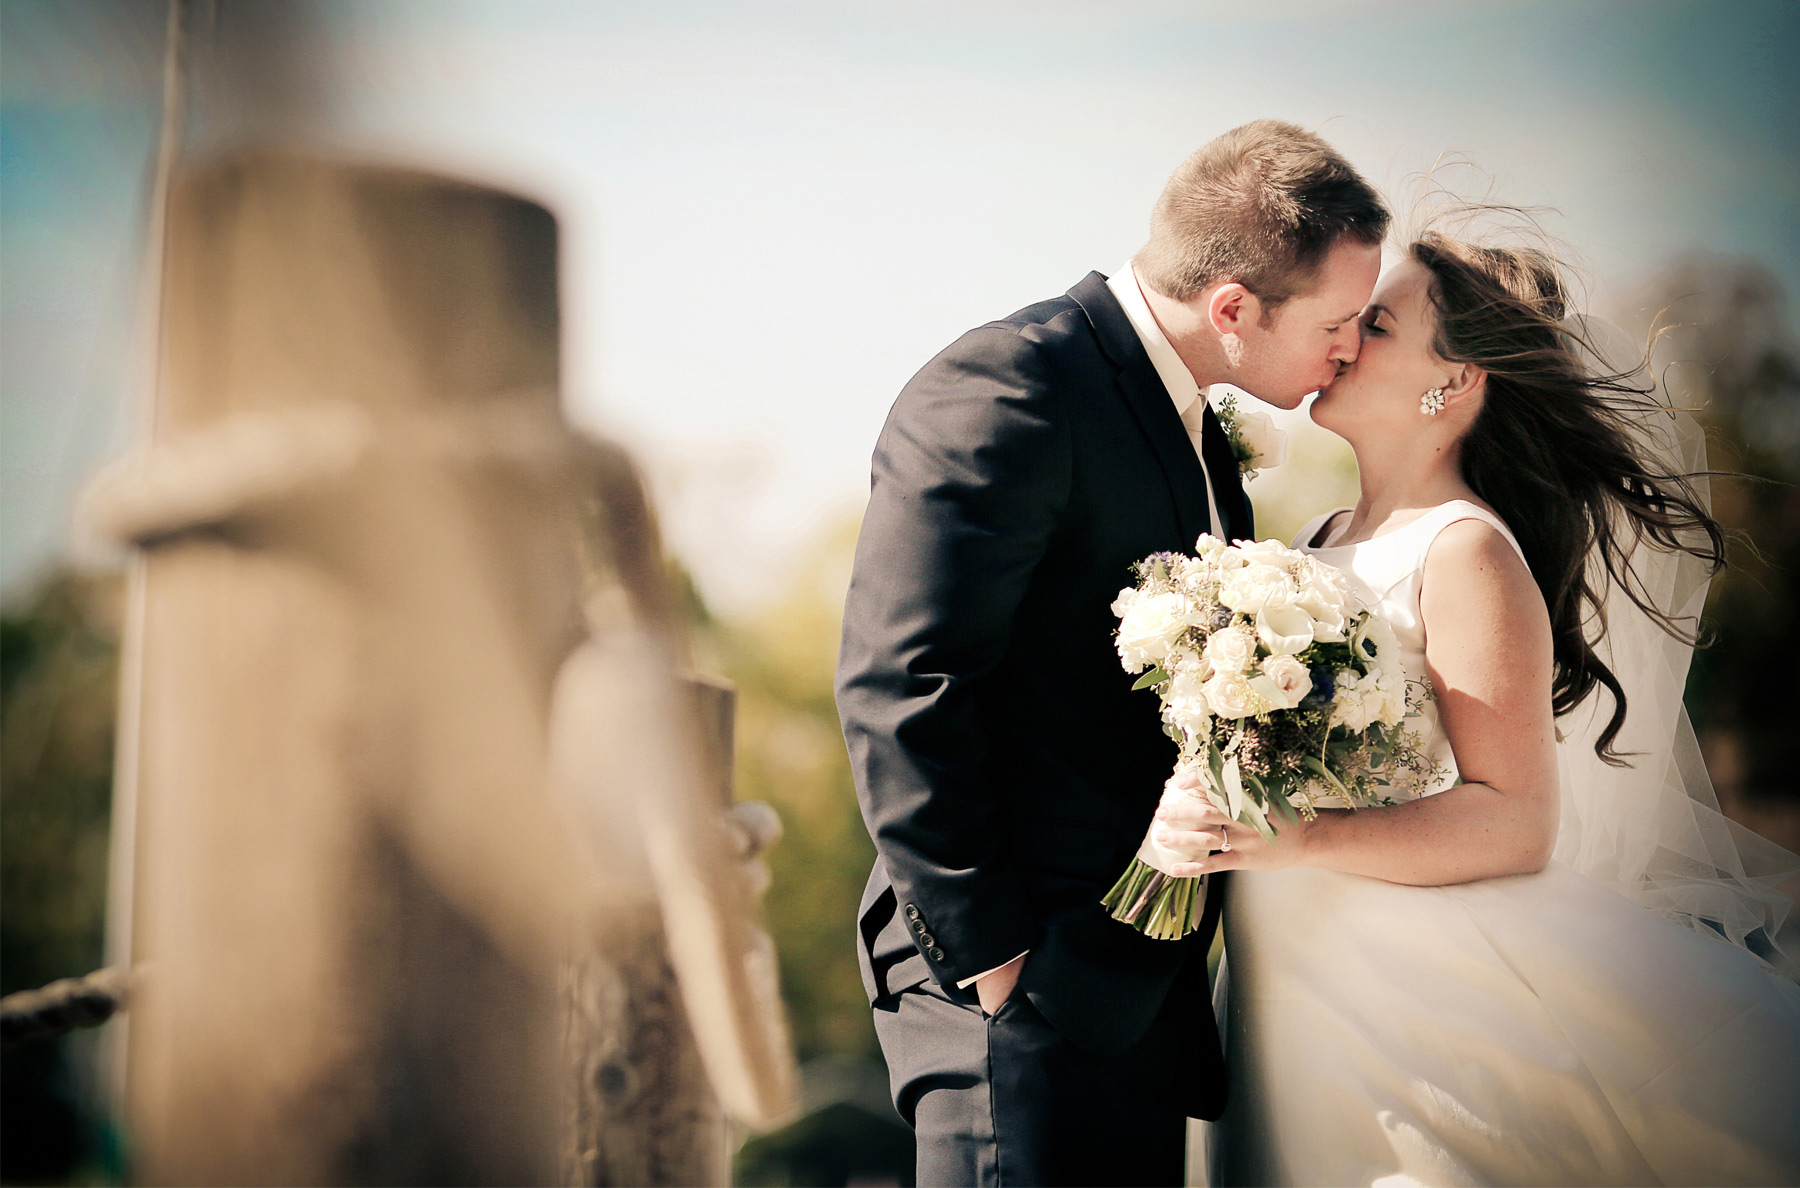 06-Minneapolis-Minnesota-Wedding-Photography-by-Vick-Photography-Lake-Dock-Elle-and-Tyler.jpg